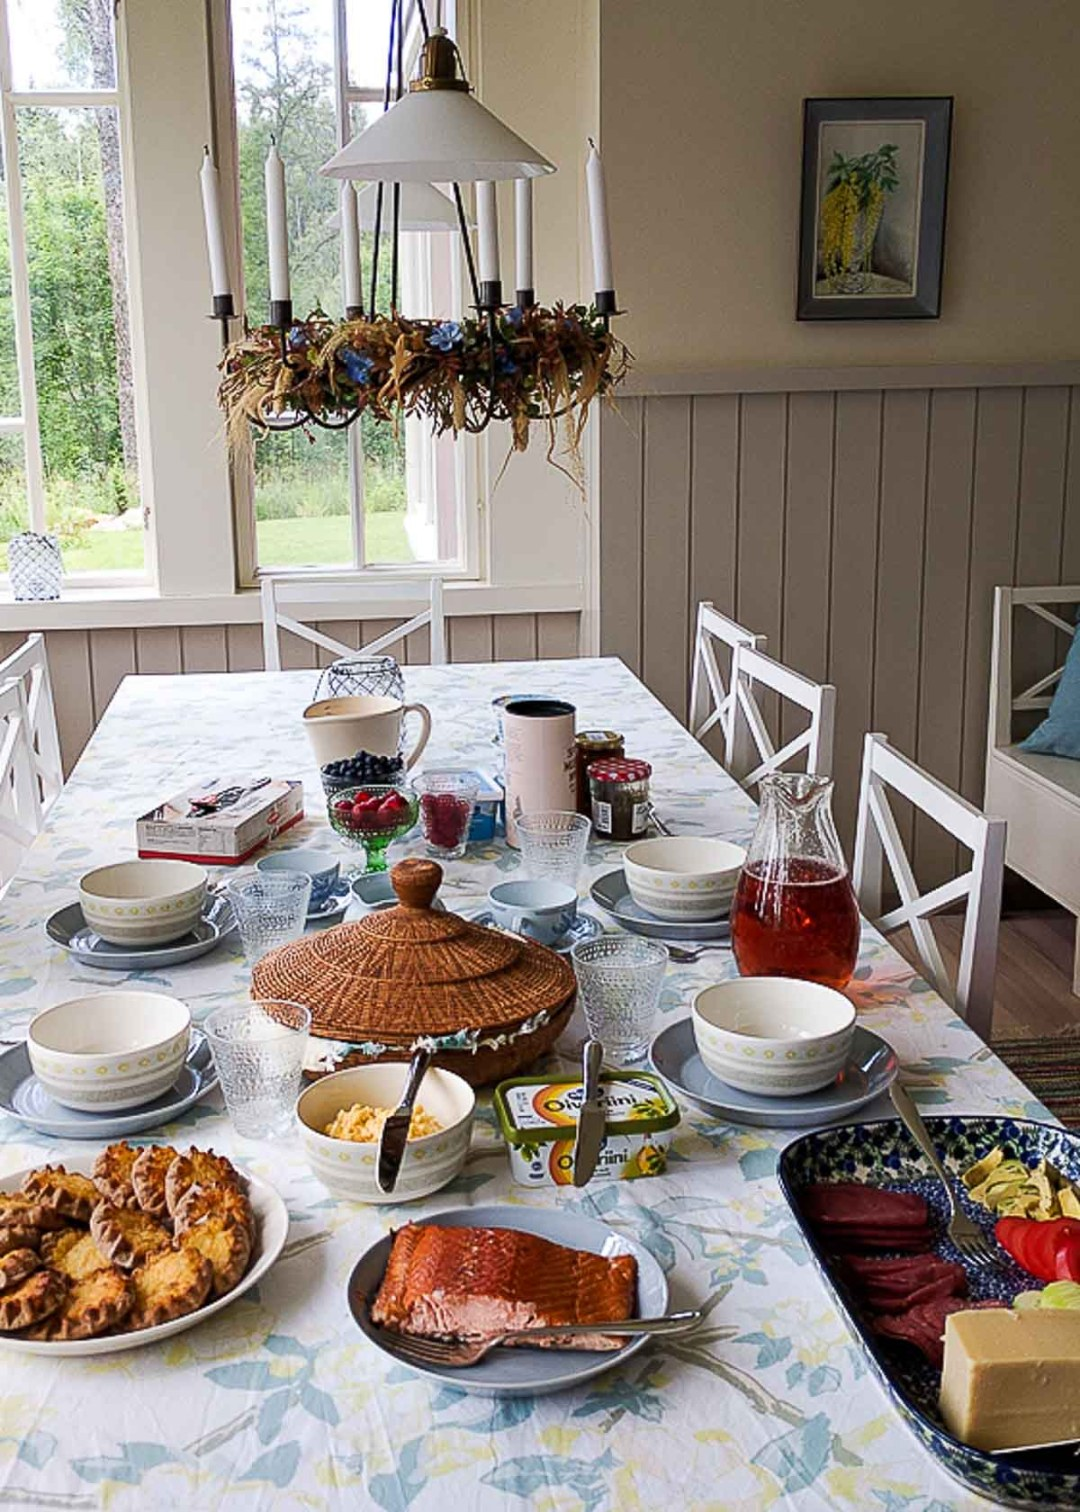 Finnish brunch at a gorgeous table with spring decor. The brunch features salmon, reindeer meat, and Finnish pastry.